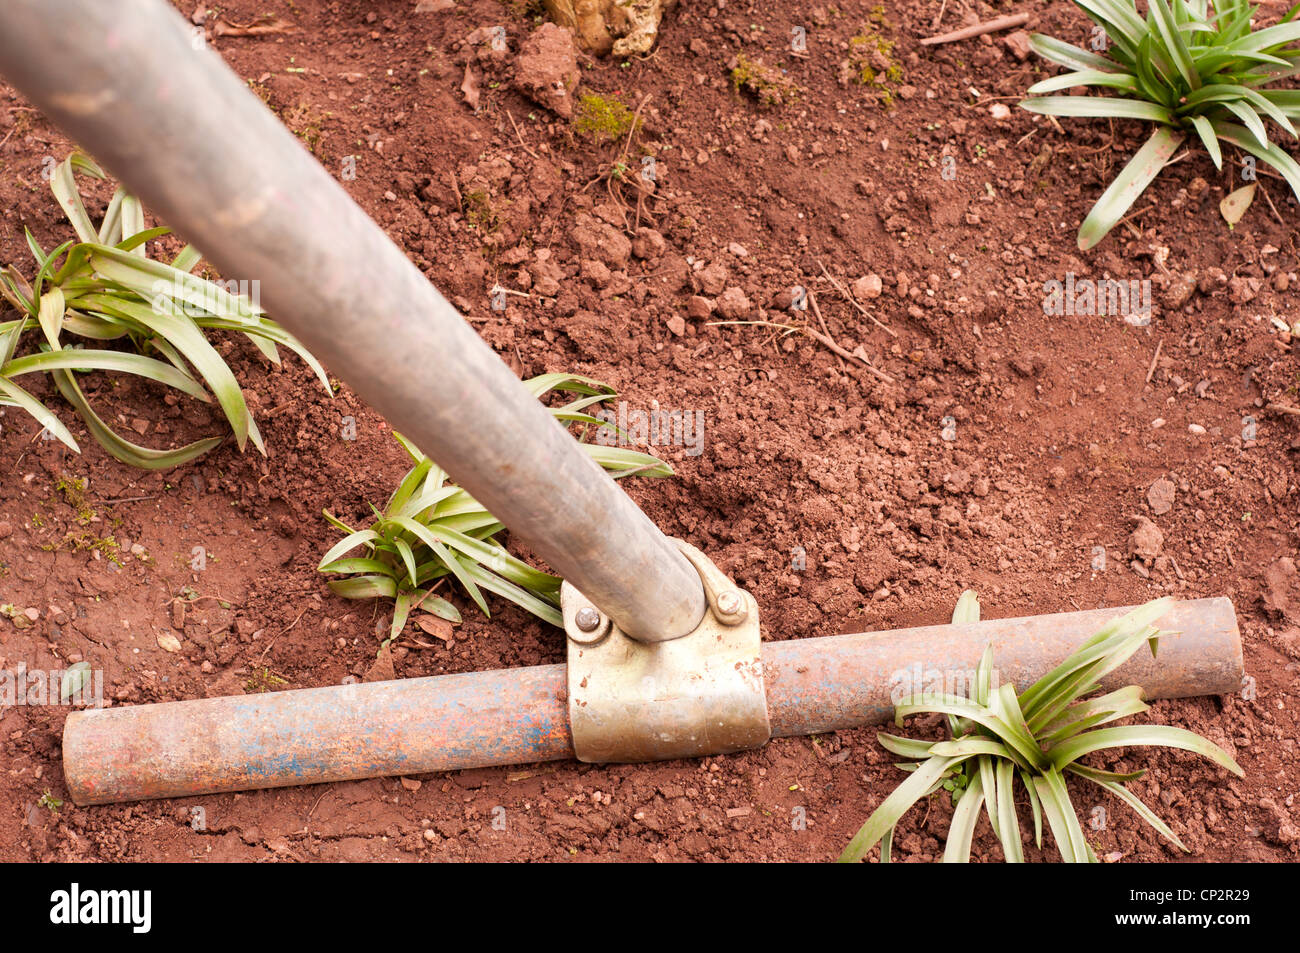 Scaffolding base with short pole connected across braced against soft ground. - Stock Image